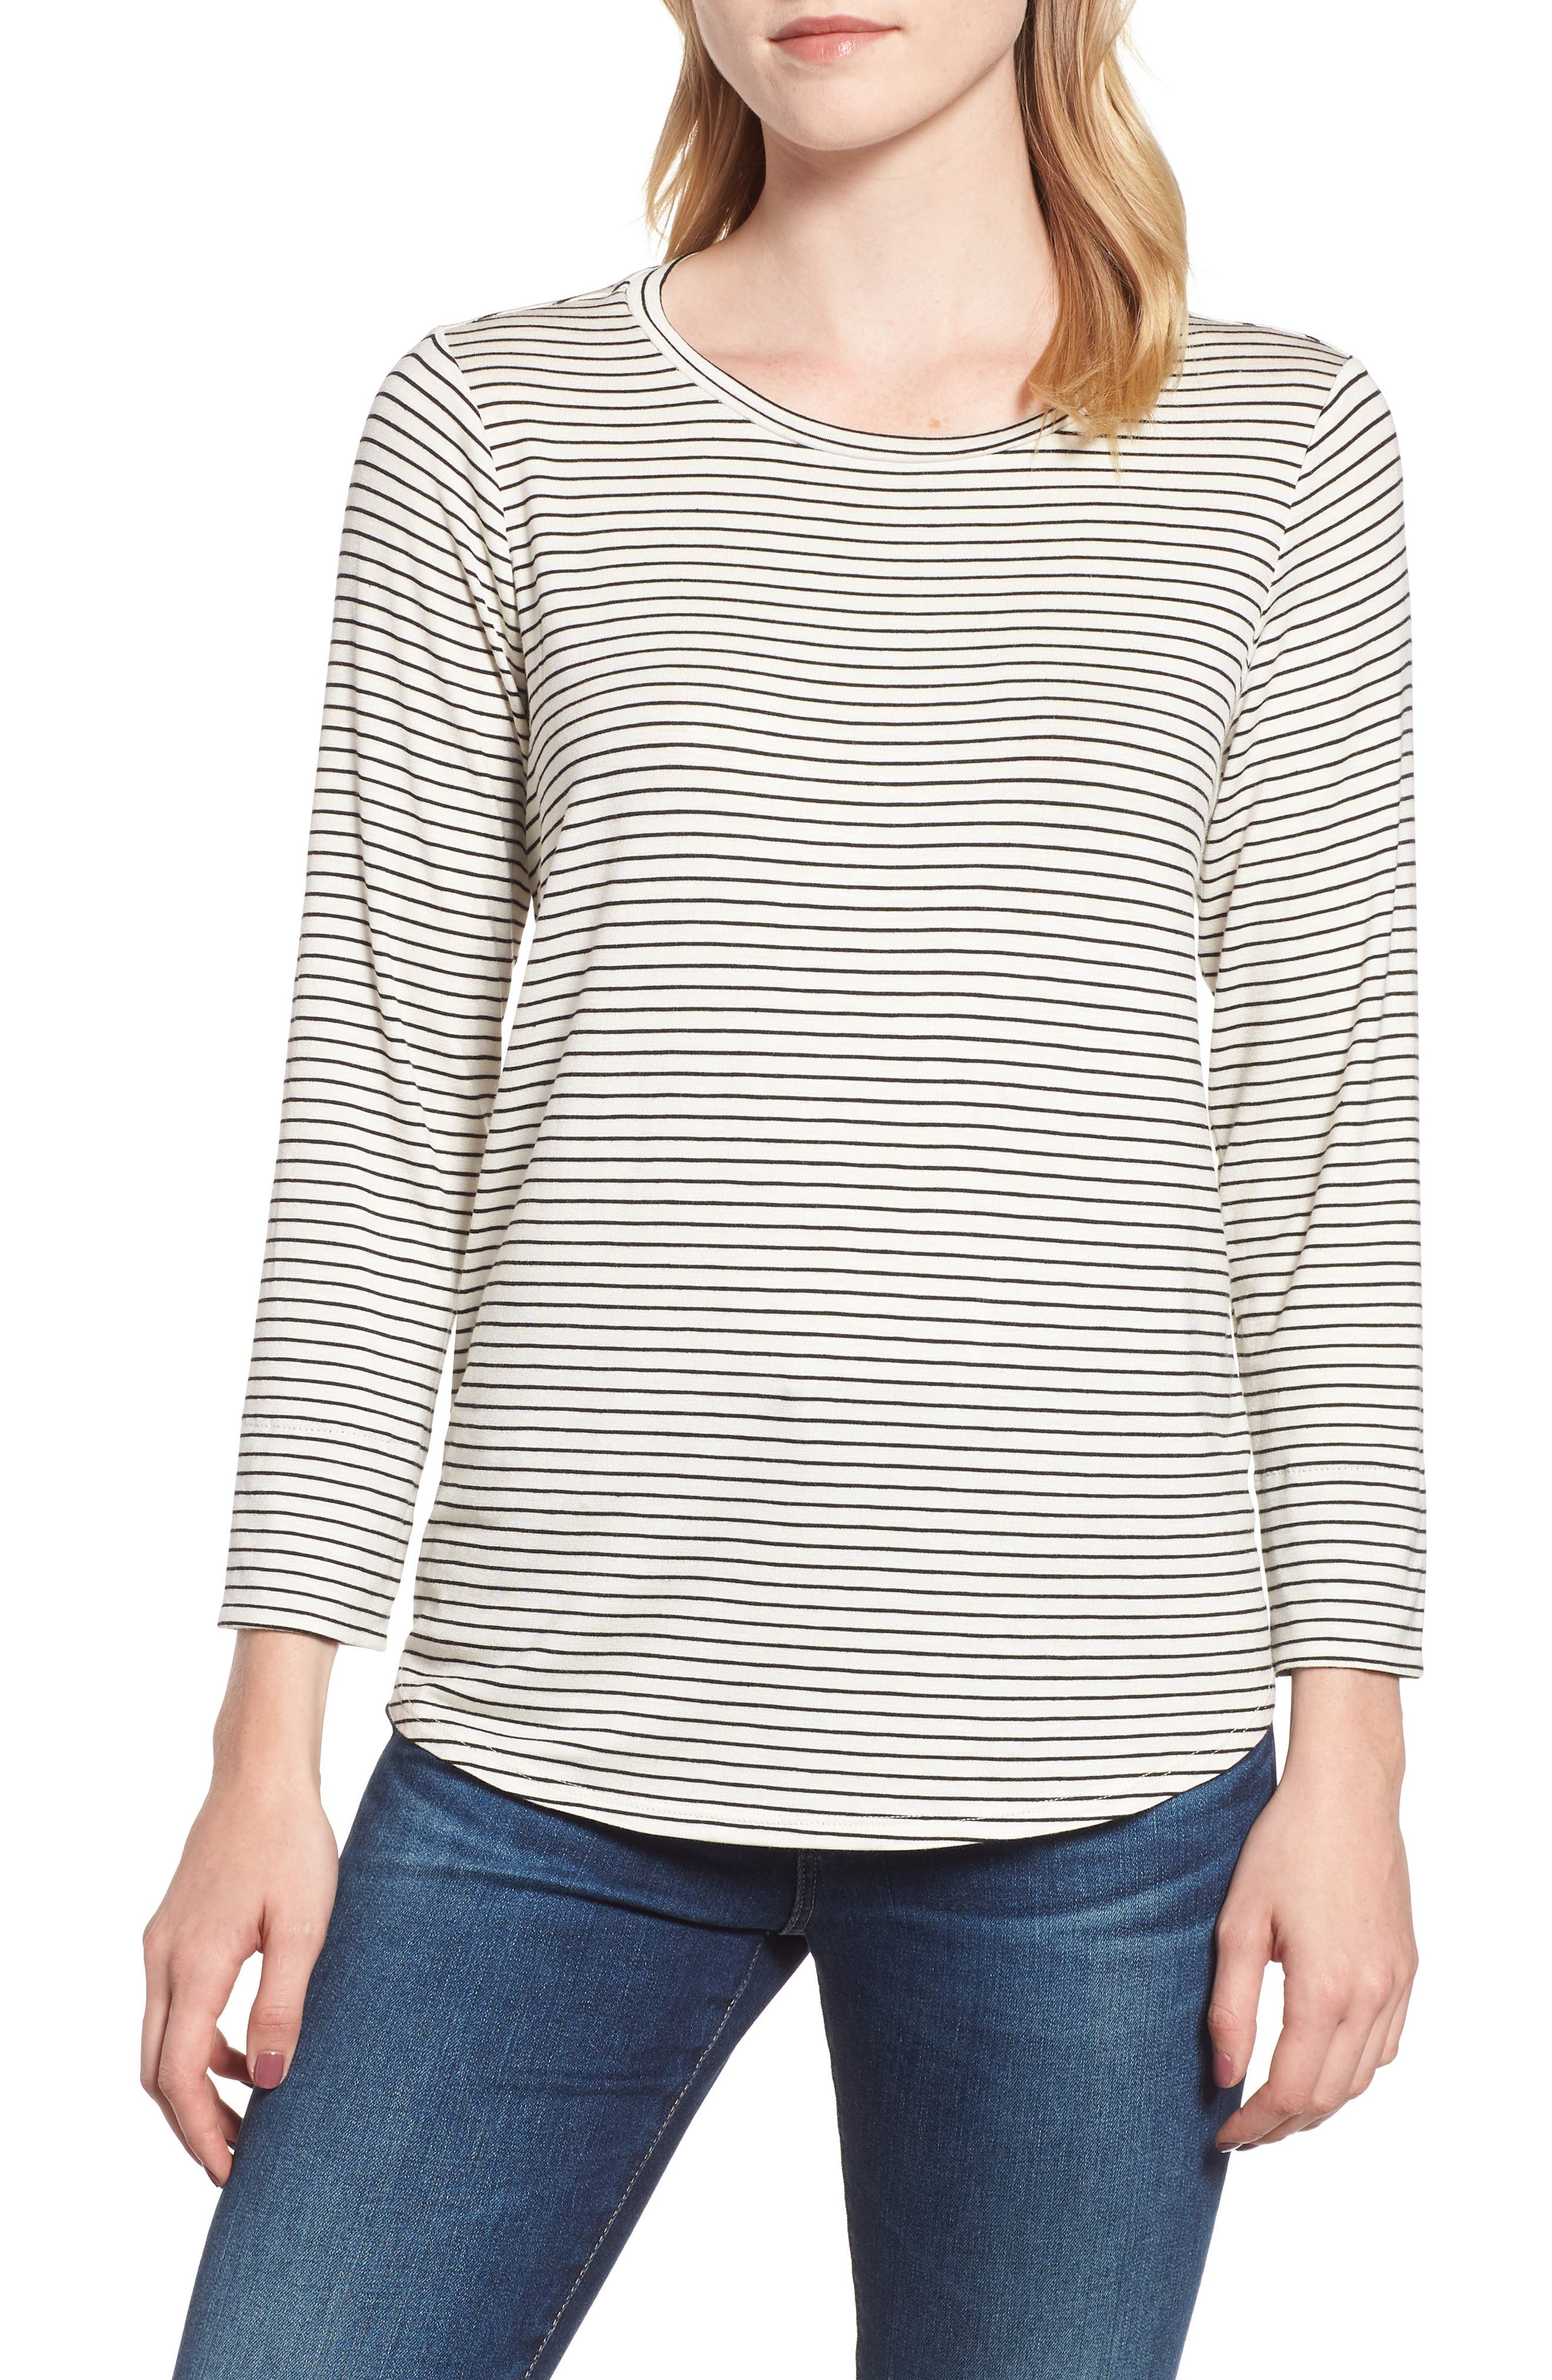 GIBSON, x Living in Yellow Alice Stripe Jersey Top, Main thumbnail 1, color, IVORY/ BLACK